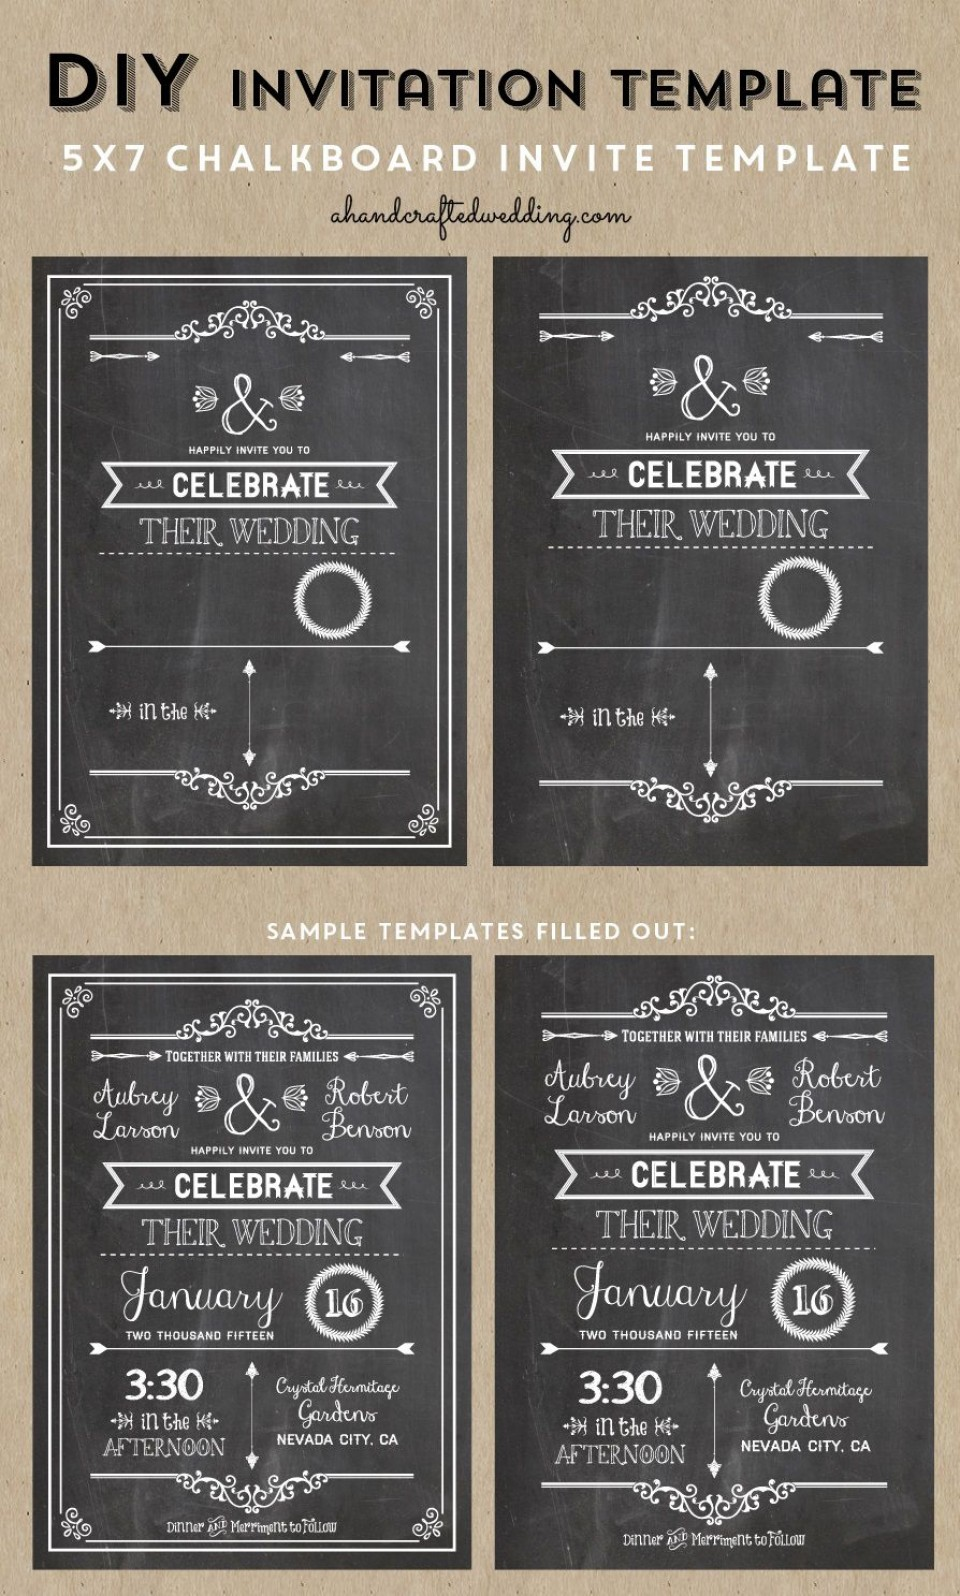 005 Wondrou Chalkboard Invitation Template Free Picture  Download Birthday960